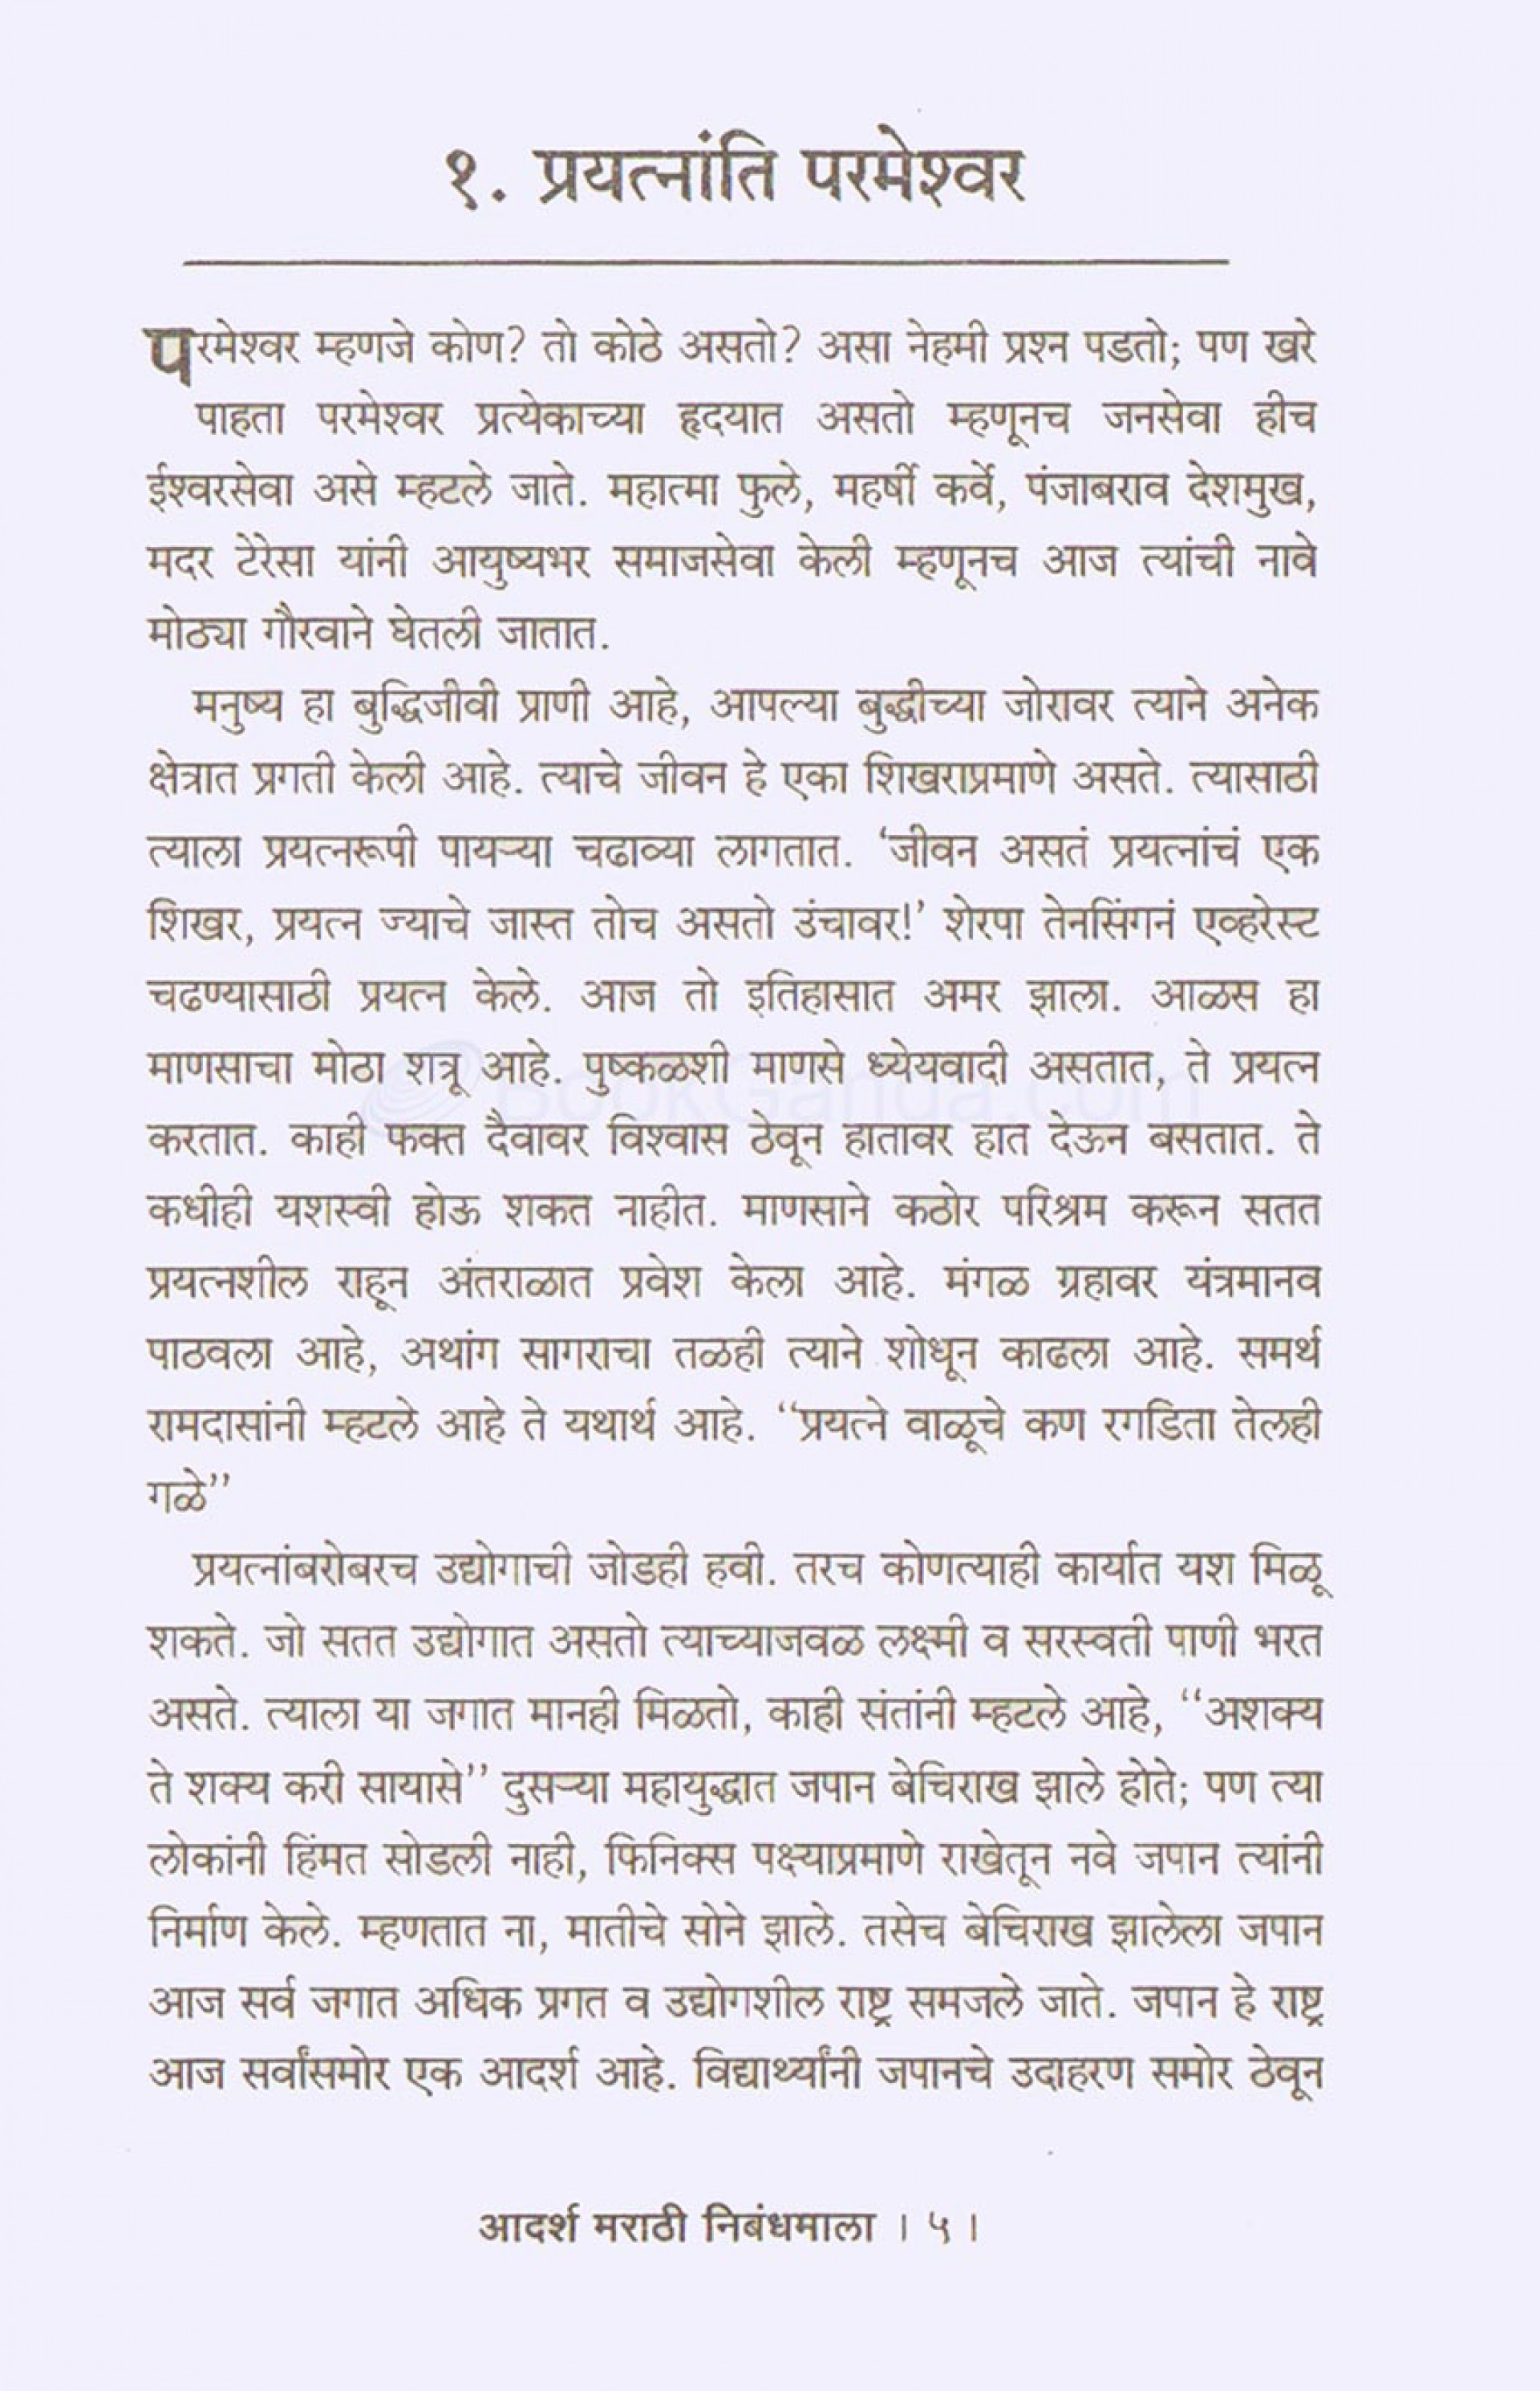 007 Page5 Empathy Essay Excellent Pdf In Hindi To Kill A Mockingbird 1920